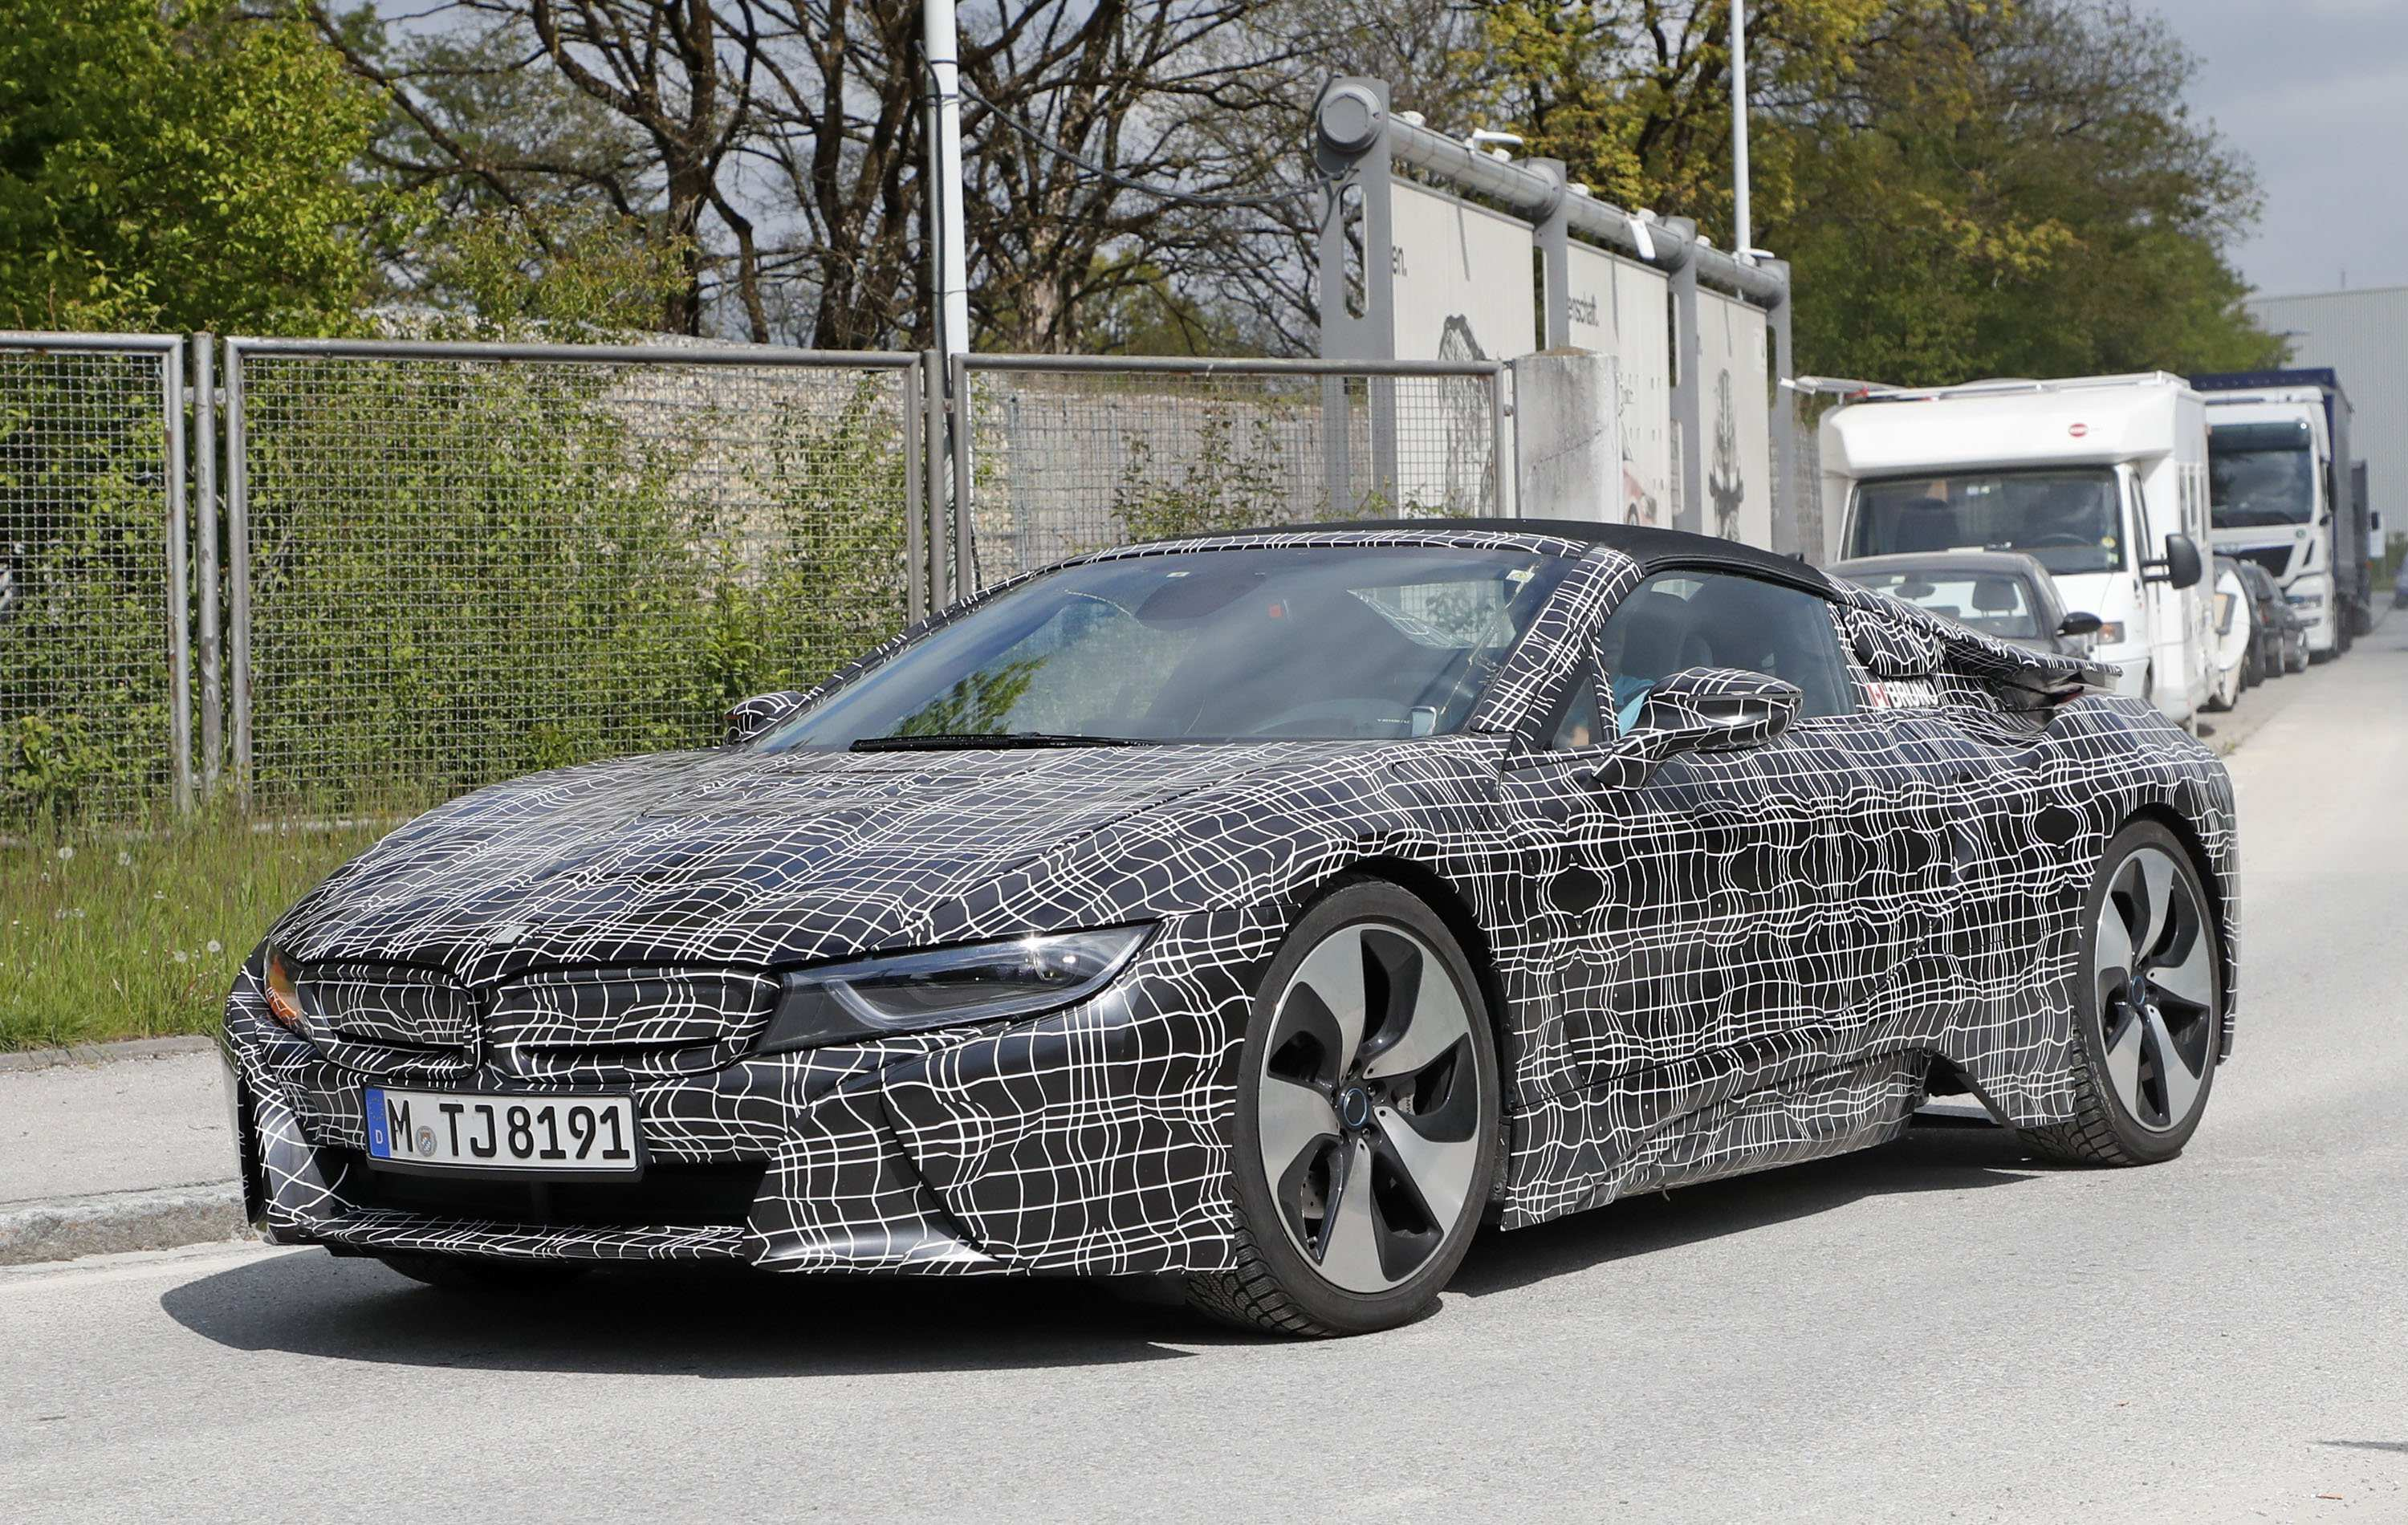 79 All New Bmw I8 2020 Exterior and Interior for Bmw I8 2020